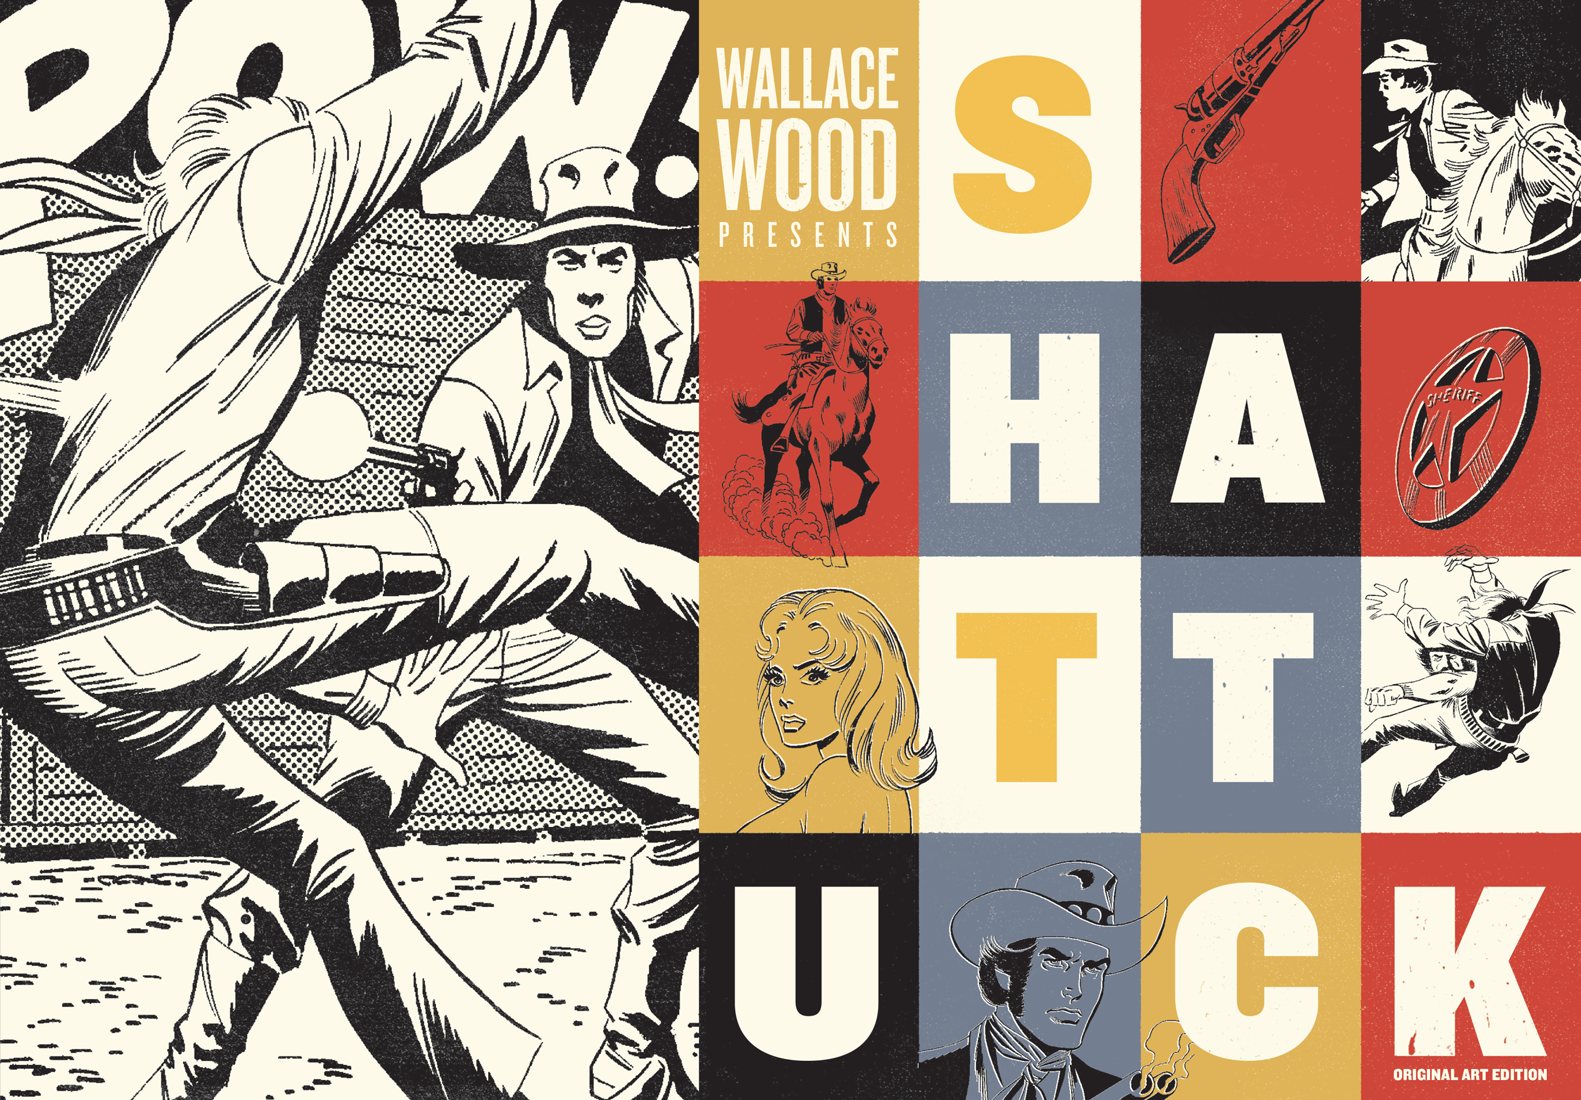 Review | Wallace Wood Presents Shattuck Original Art Edition